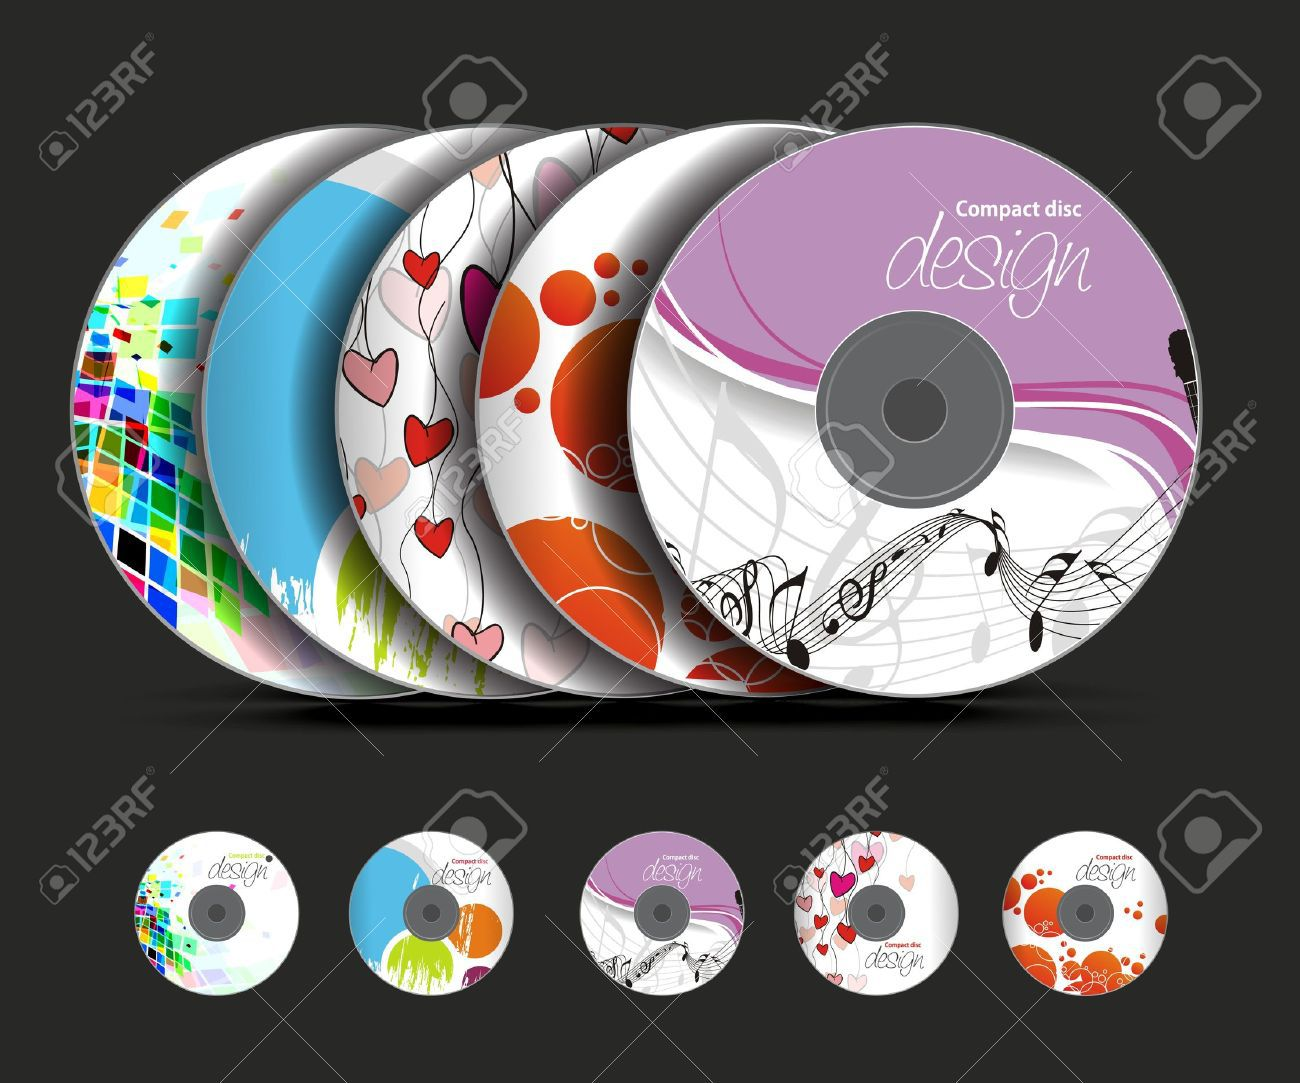 000 Fascinating Cd Design Template Free Image  Cover Download Word Label WeddingFull